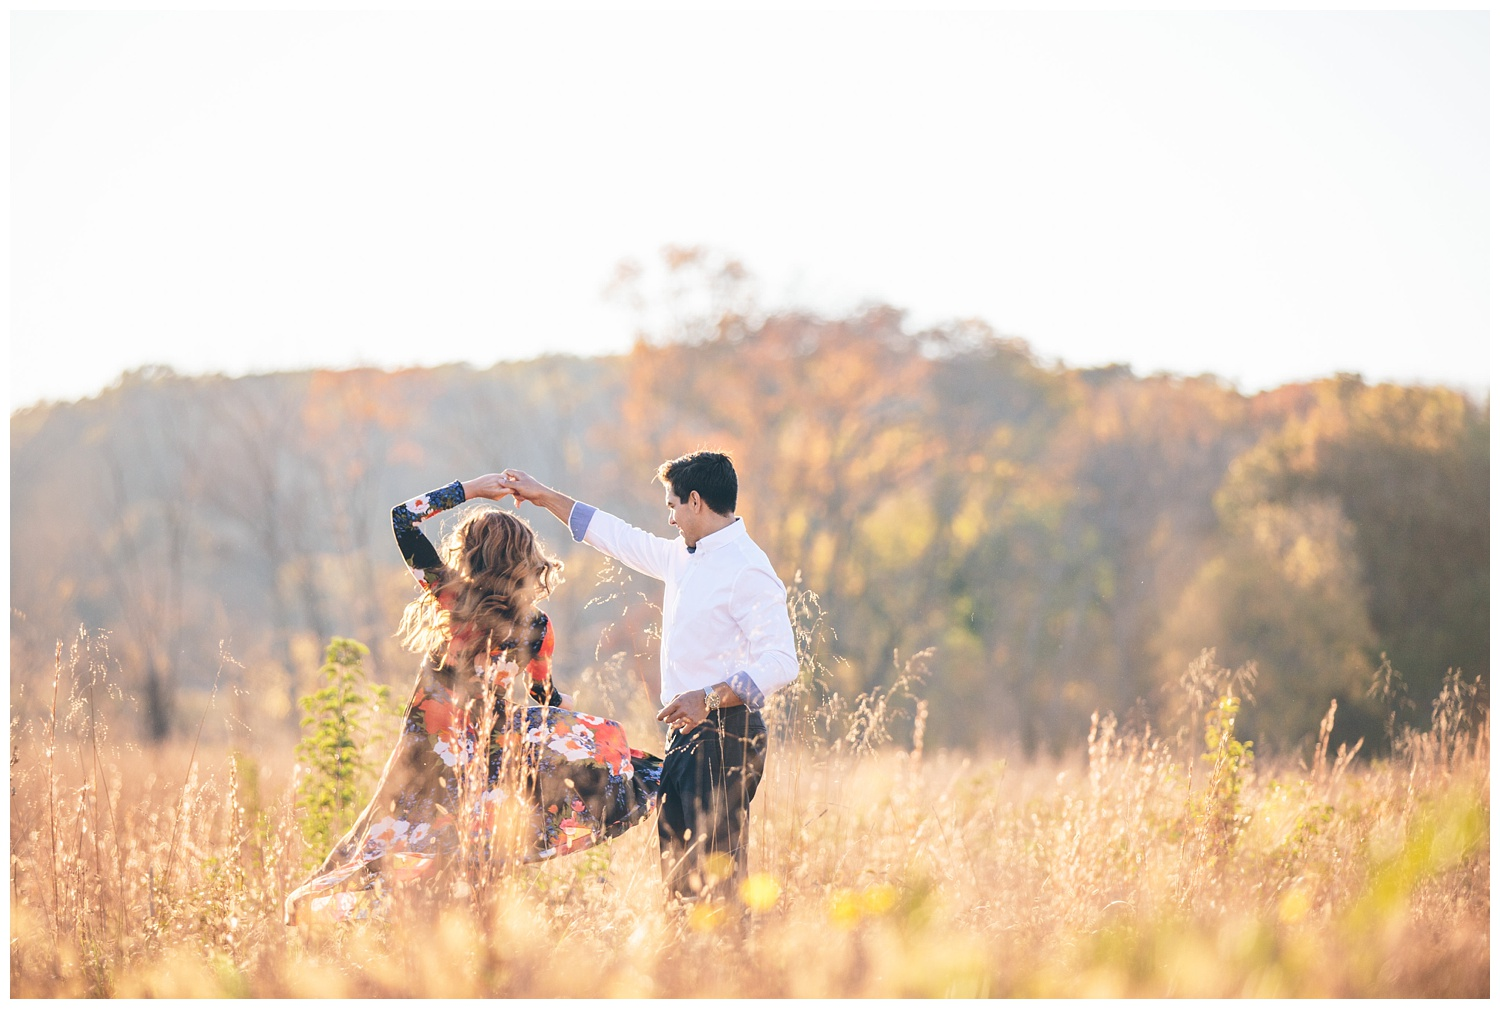 New York, New Jersey and Pennsylvania wedding vendors, resources and inspiration for the modern couple  Valley Forge National Park